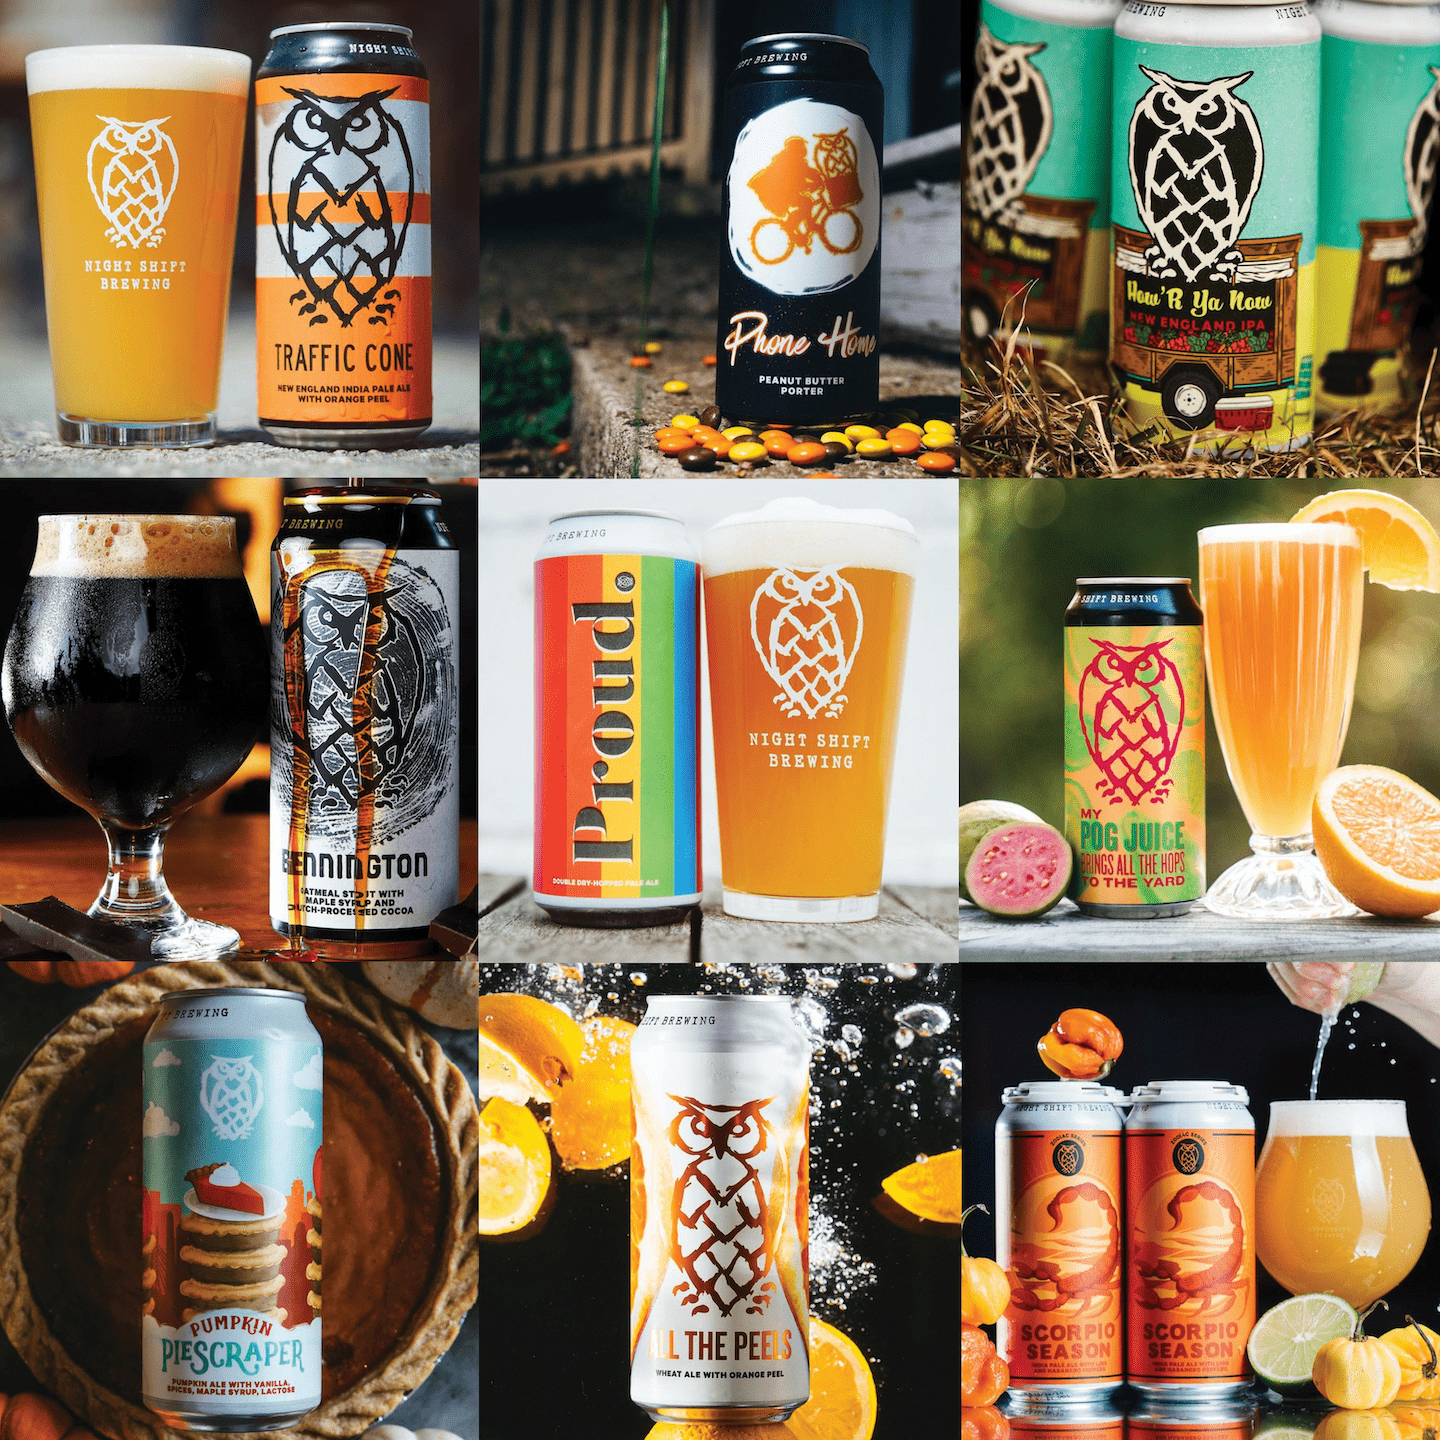 A variety of limited release beers including IPA, stout, porter, sour beer